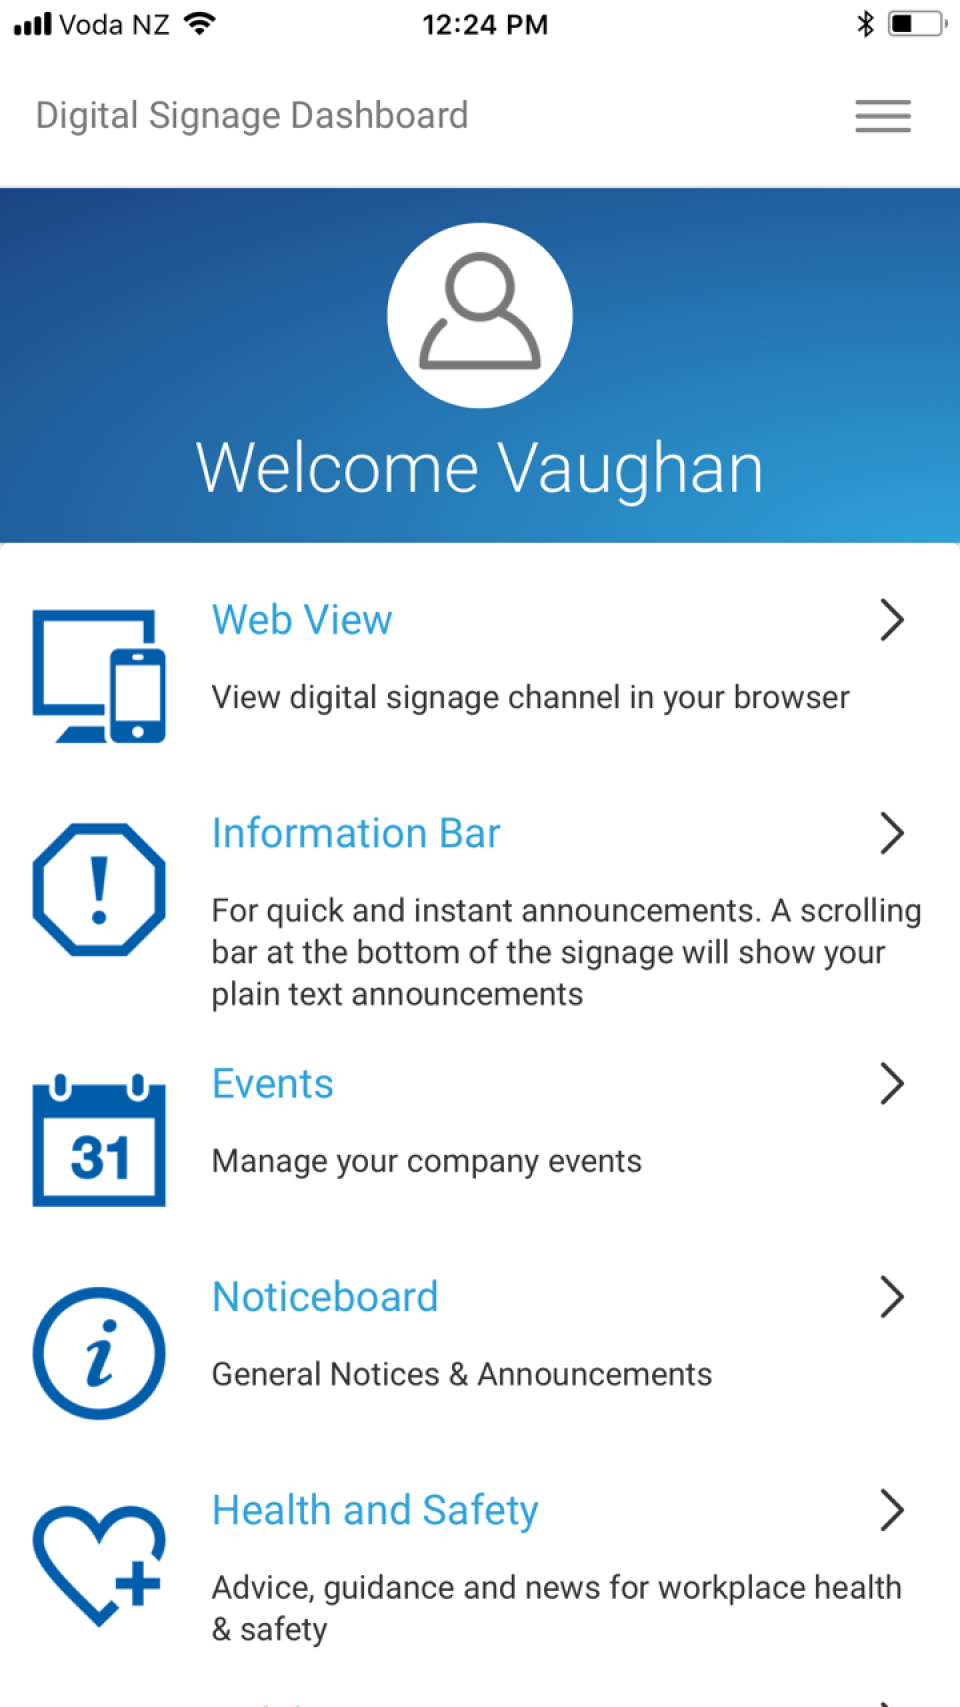 Access Contegro's digital signage dashboard remotely via mobile device